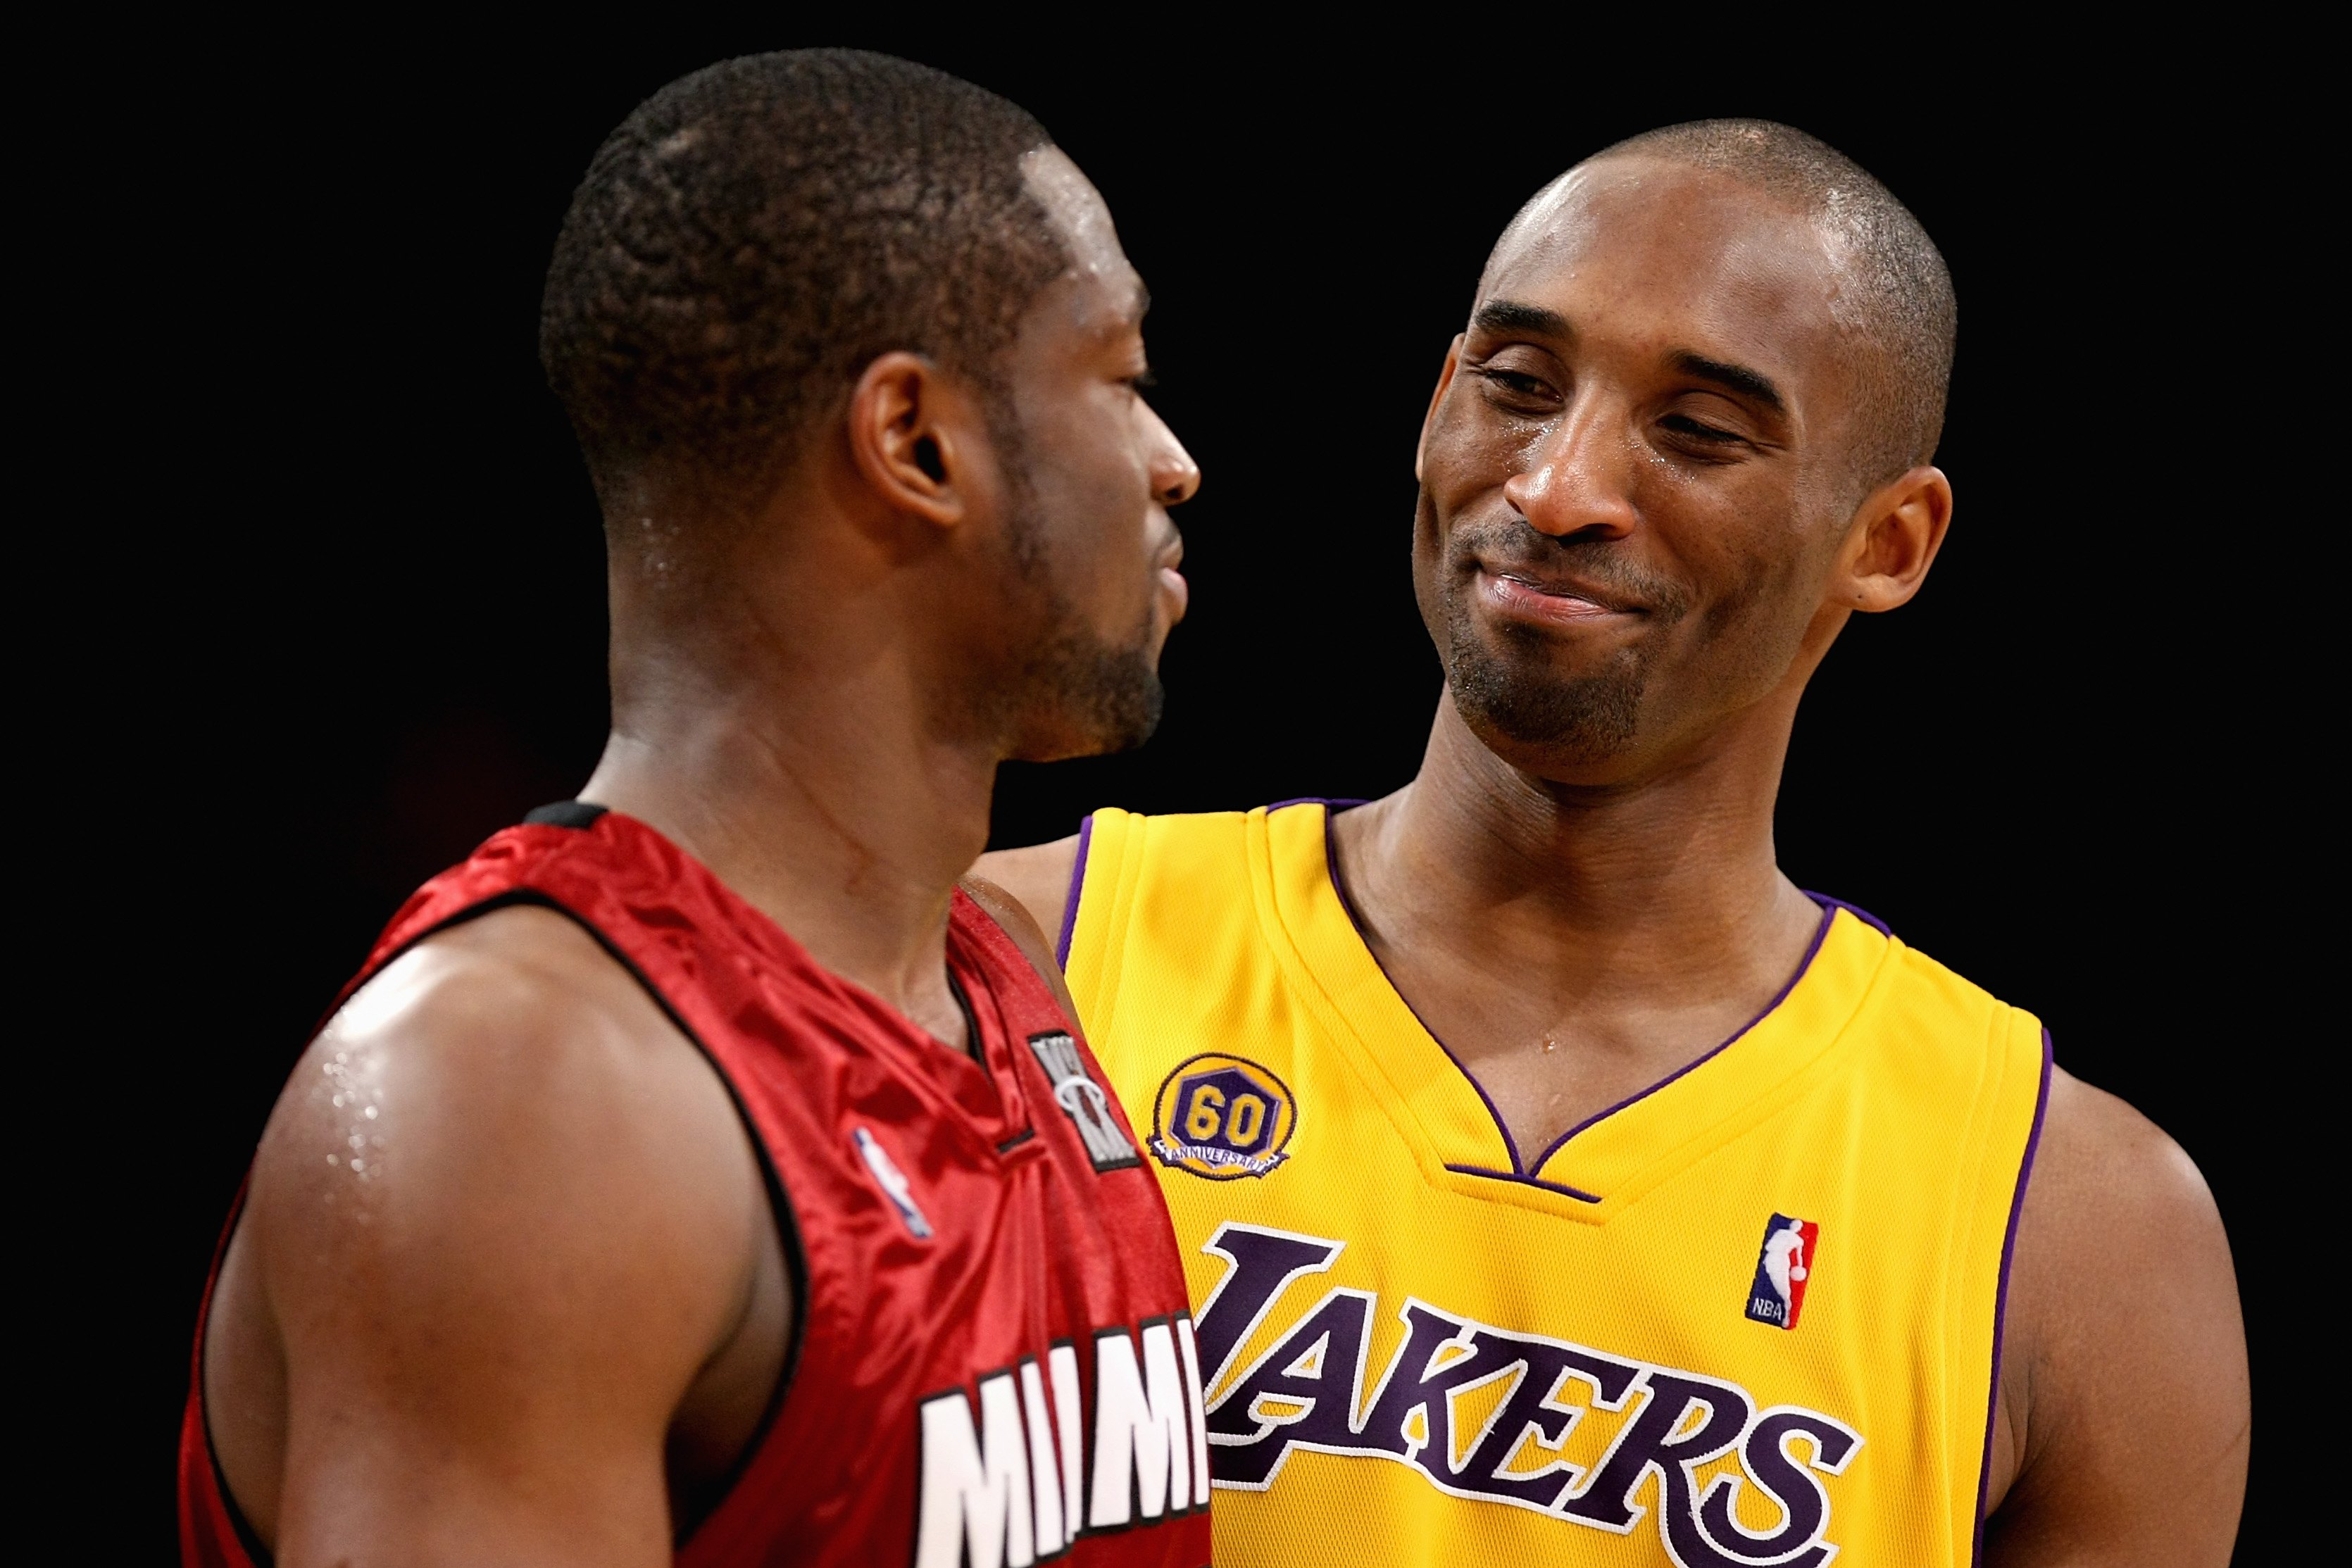 LOS ANGELES - FEBRUARY 28:  Kobe Bryant #24 of the Los Angeles Lakers shares a laugh with Dwyane Wade #3 of the Miami Heat during the game on February 28, 2008 at Staples Center in Los Angeles, California.  The Lakers won 106-88. NOTE TO USER: User expres